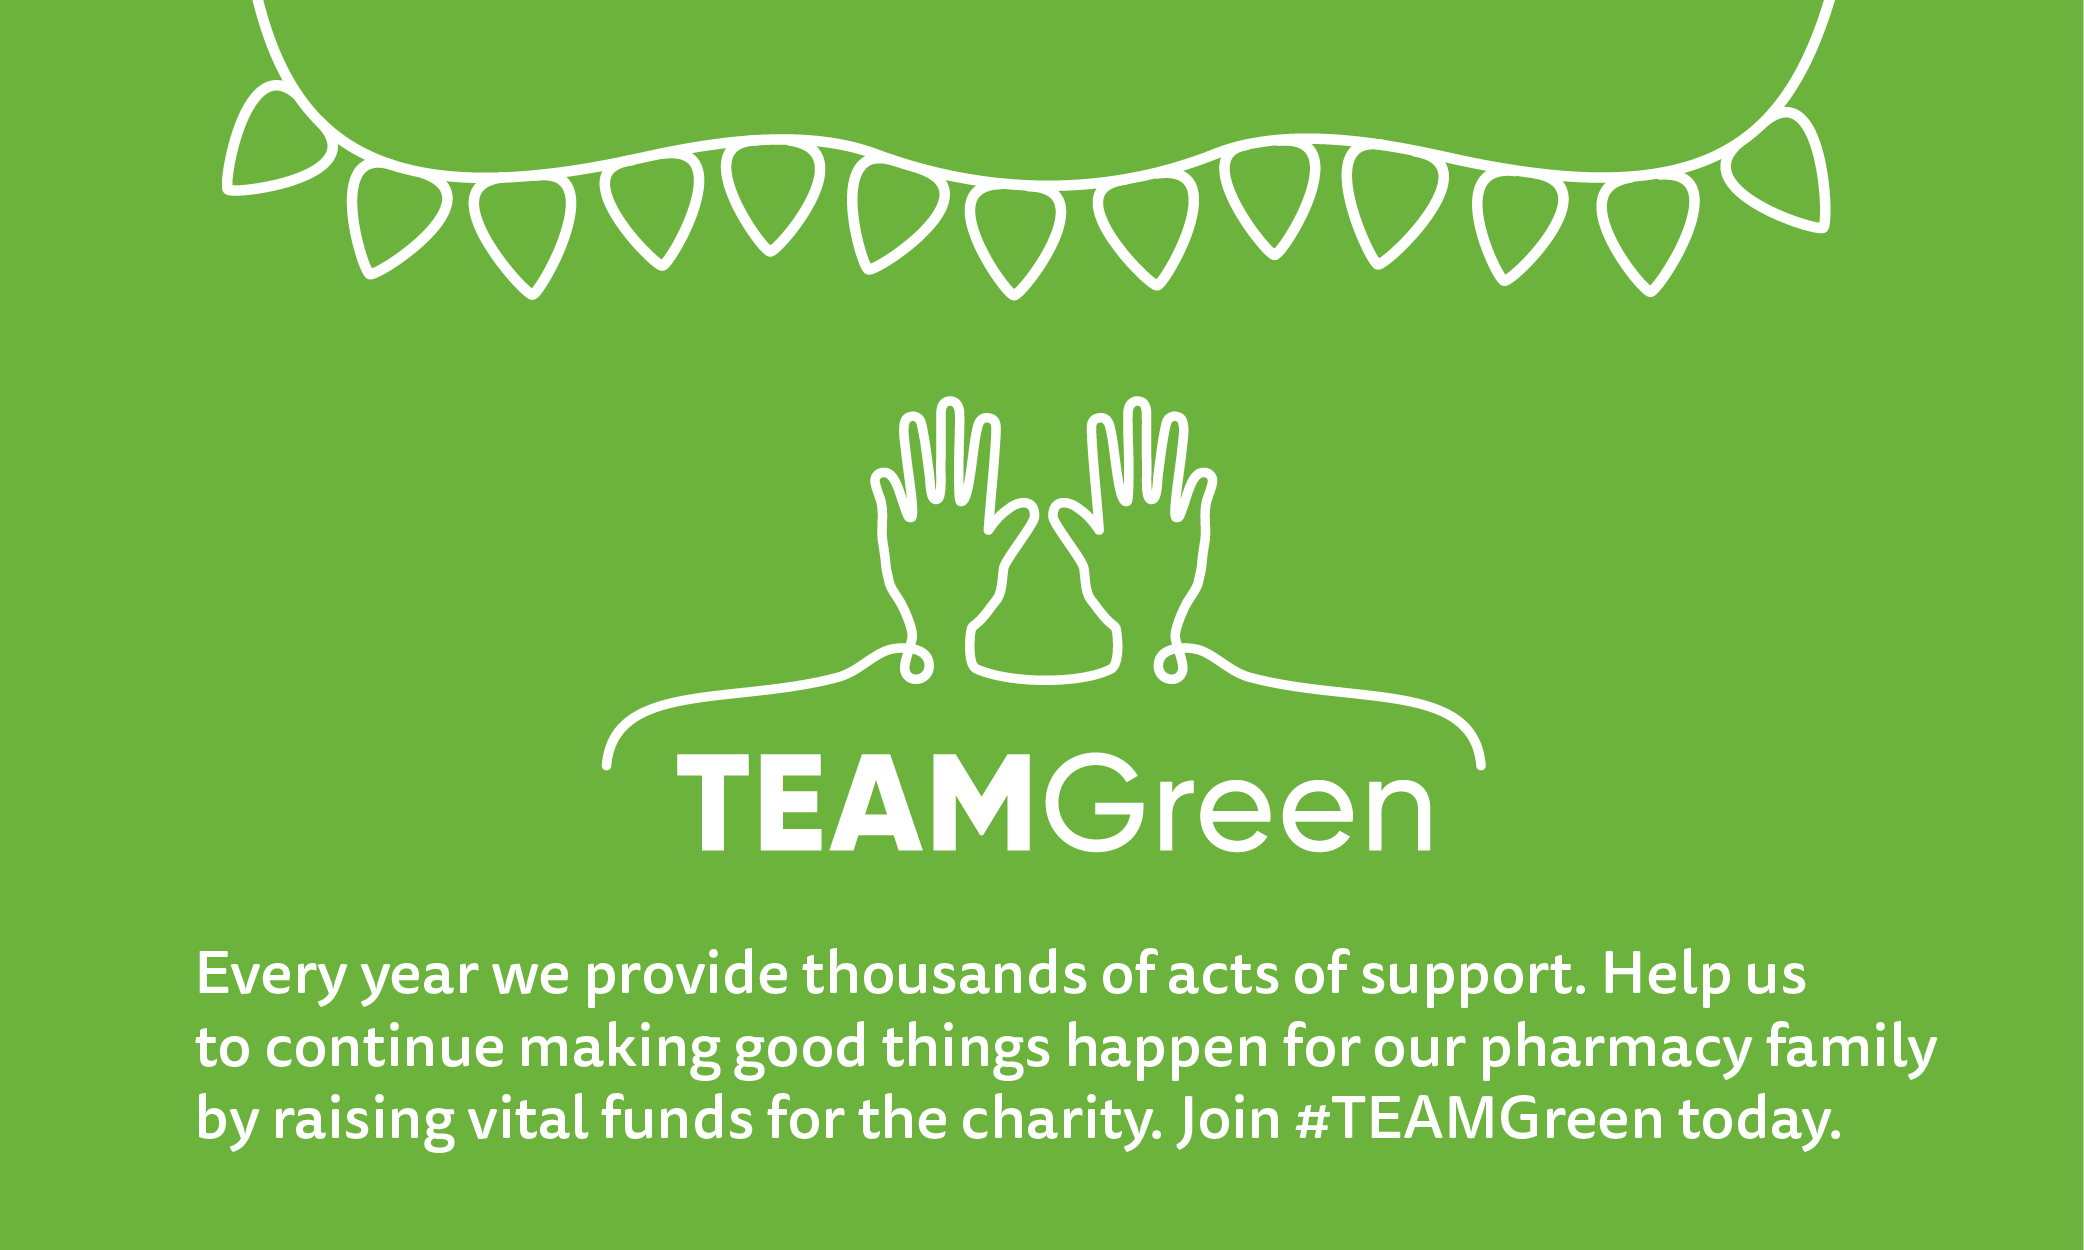 Join TEAMGreen